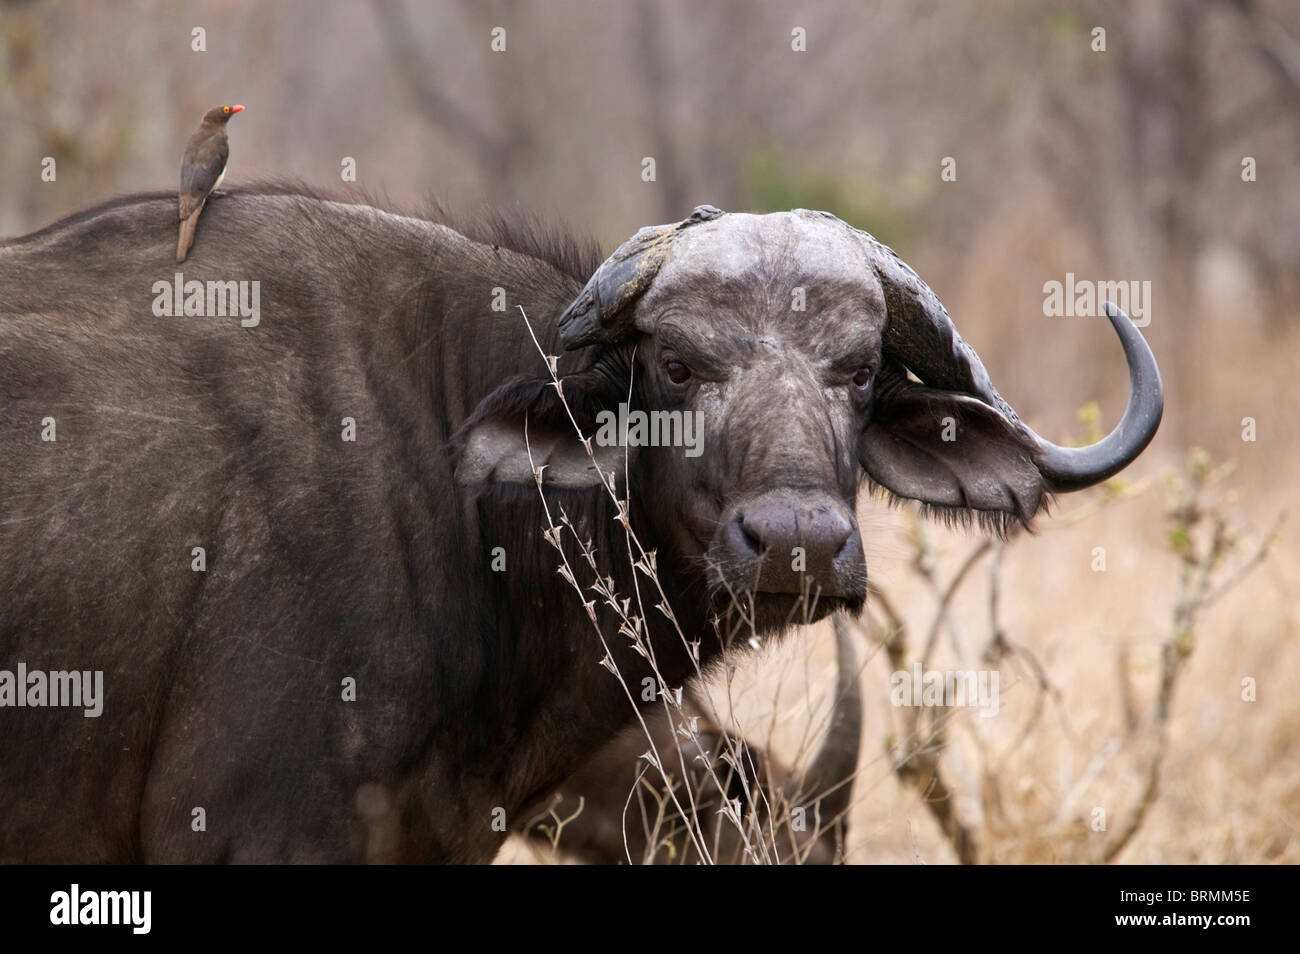 Portrait of an old female buffalo with a broken horn - Stock Image